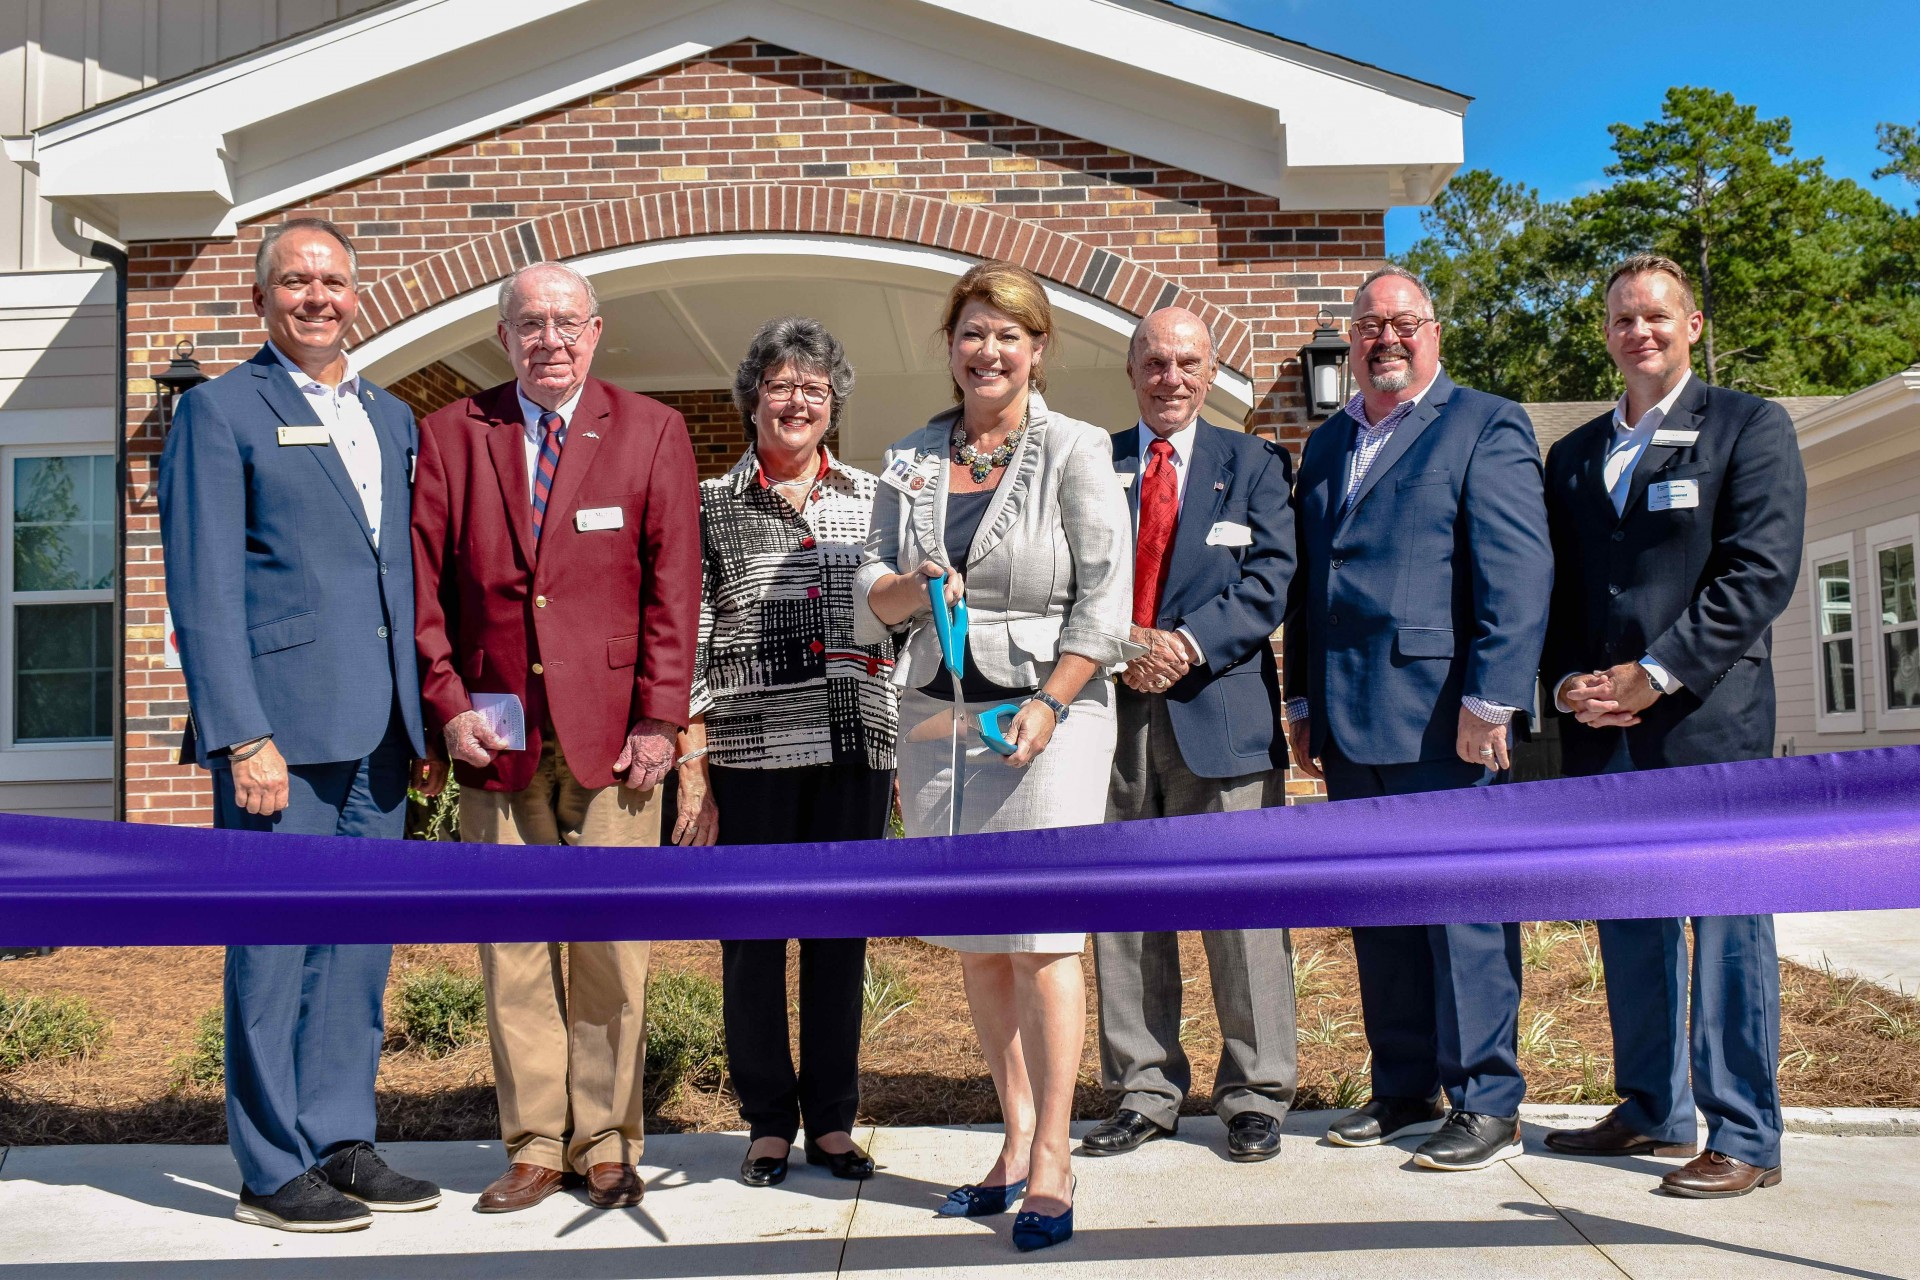 Executive Director Shannon Sauls, at center, holds the scissors for the ceremonial ribbon-cutting. (From left) Westminster Communities of Florida CEO Terry Rogers, Westminster Oaks Resident Council President James Melton, Board Member Linda Shelley, Sauls, Board Member John Milton V, Chief Operating Officer Garry D. Hennis, and LeadingAge Florida President Steve Bahmer.